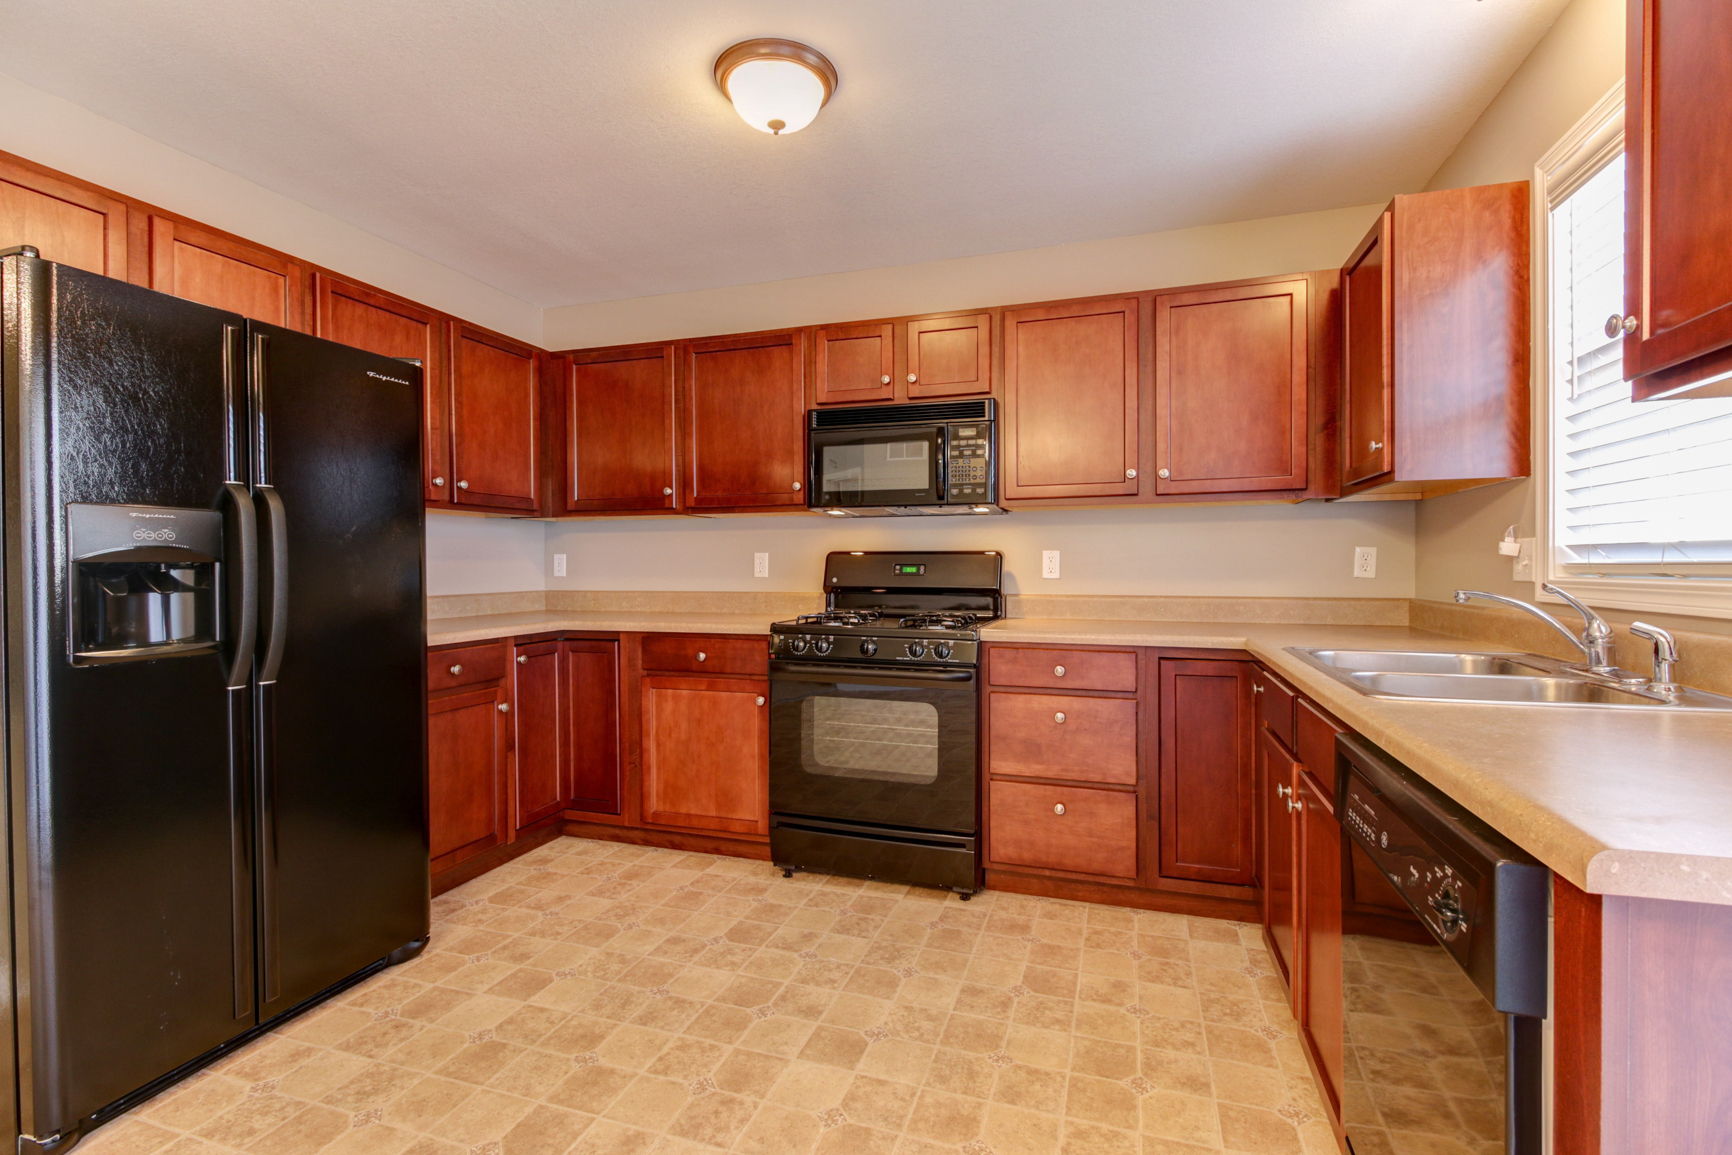 Spacious, Updated Eat-in Kitchen